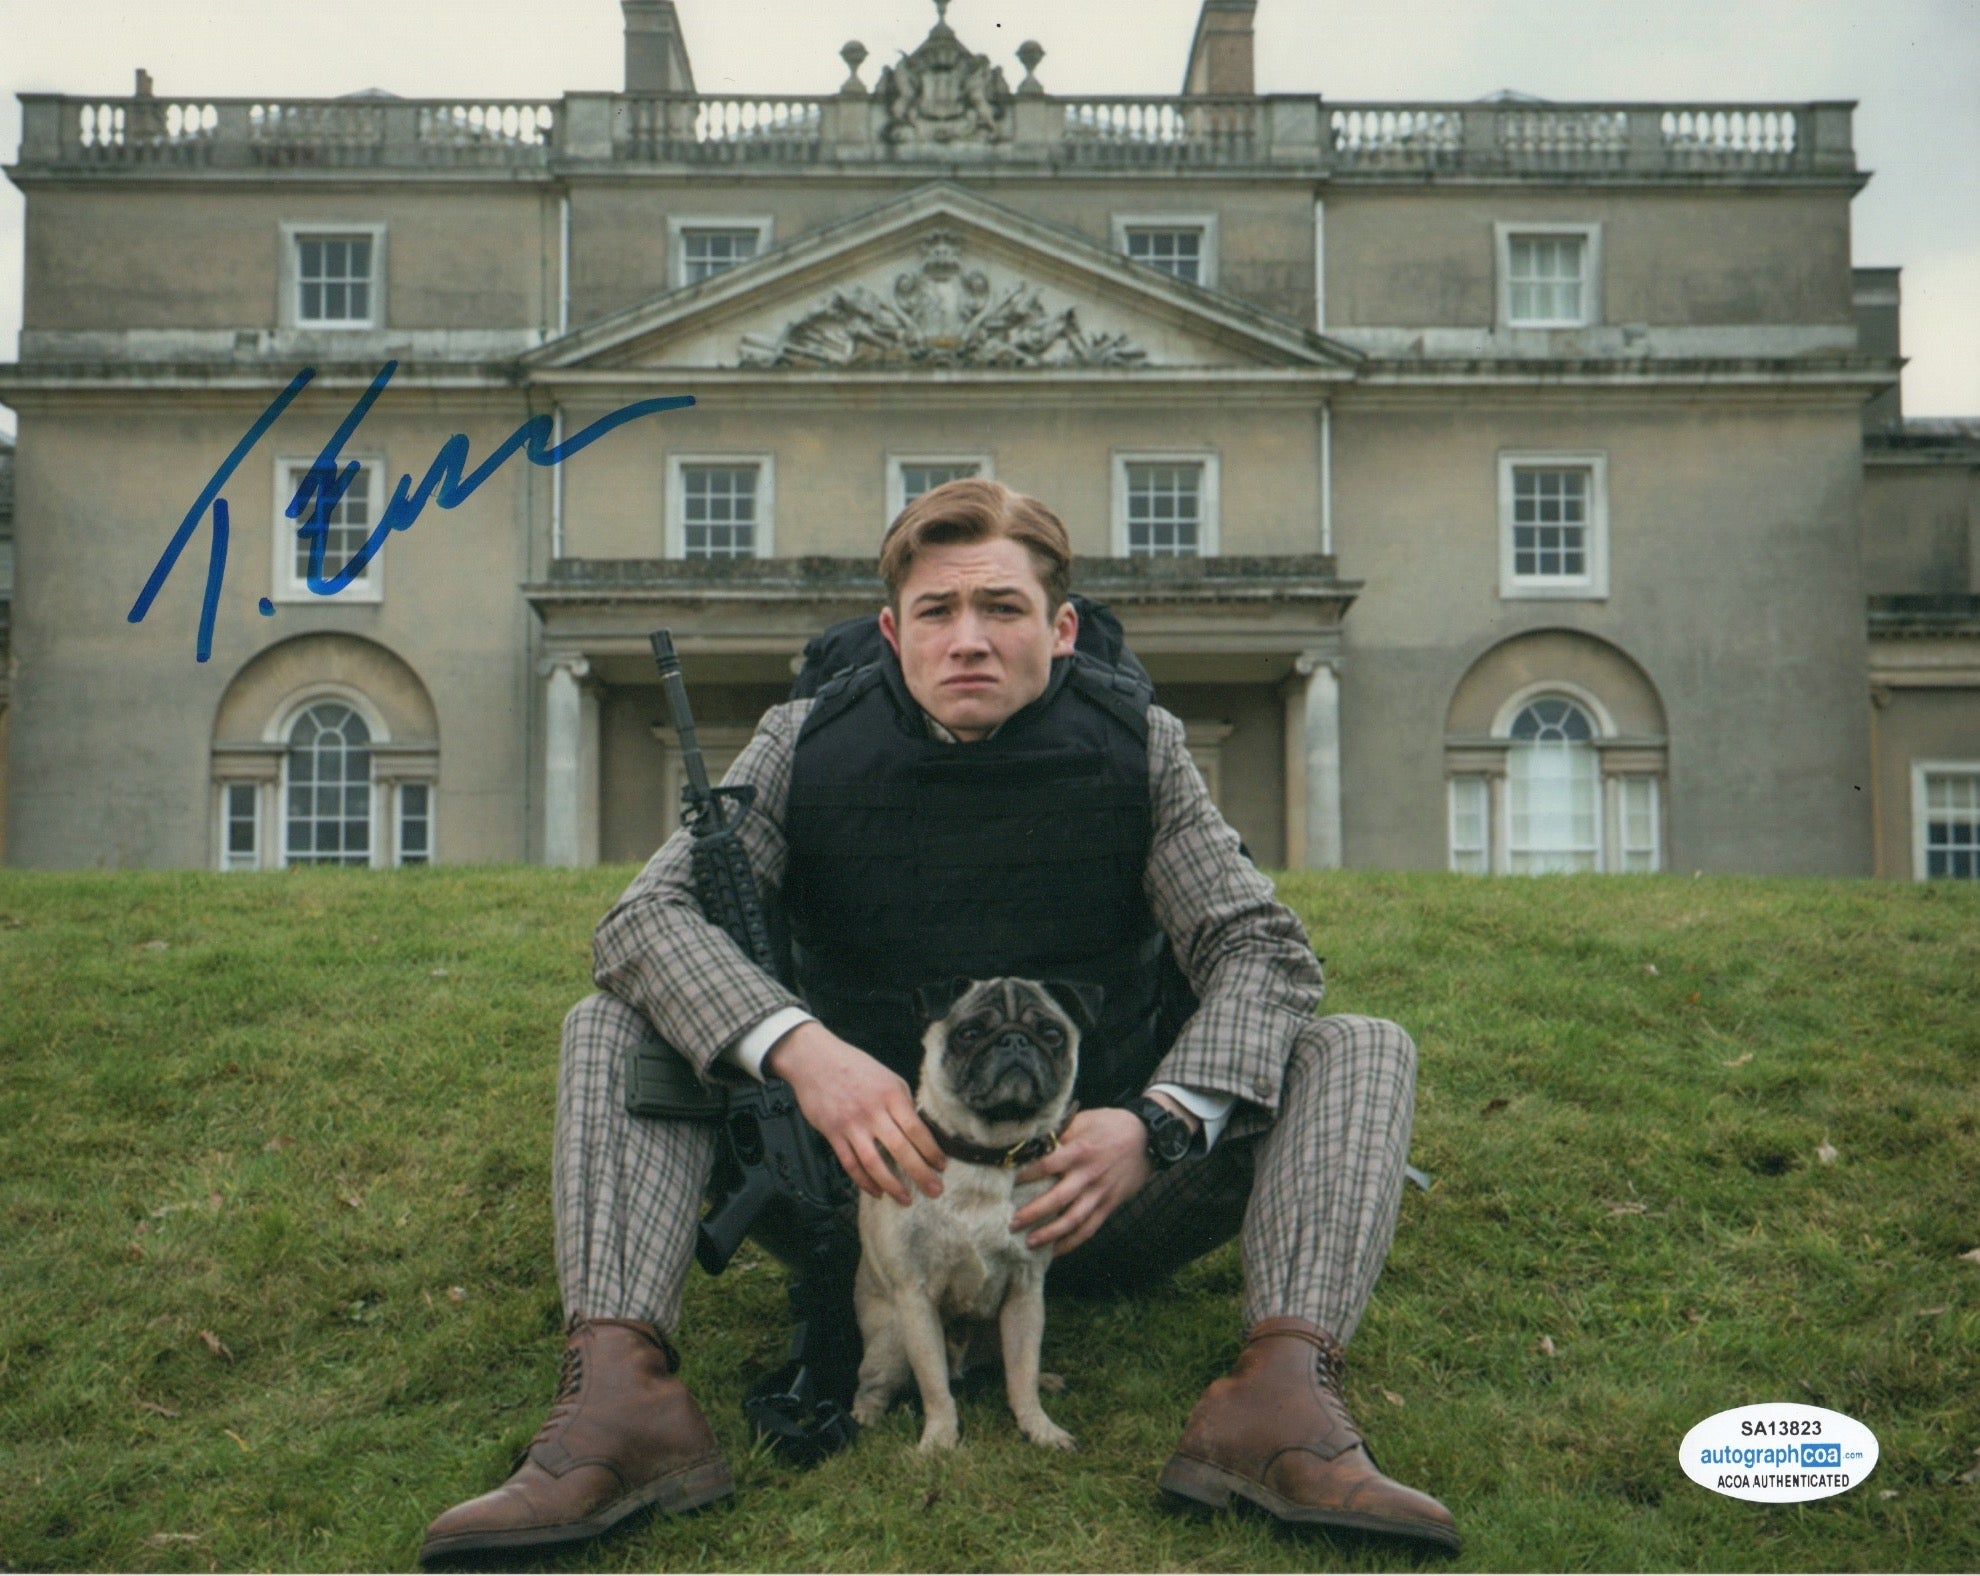 Taron Egerton Kingsman Signed Autograph 8x10 Photo - Outlaw Hobbies Authentic Autographs